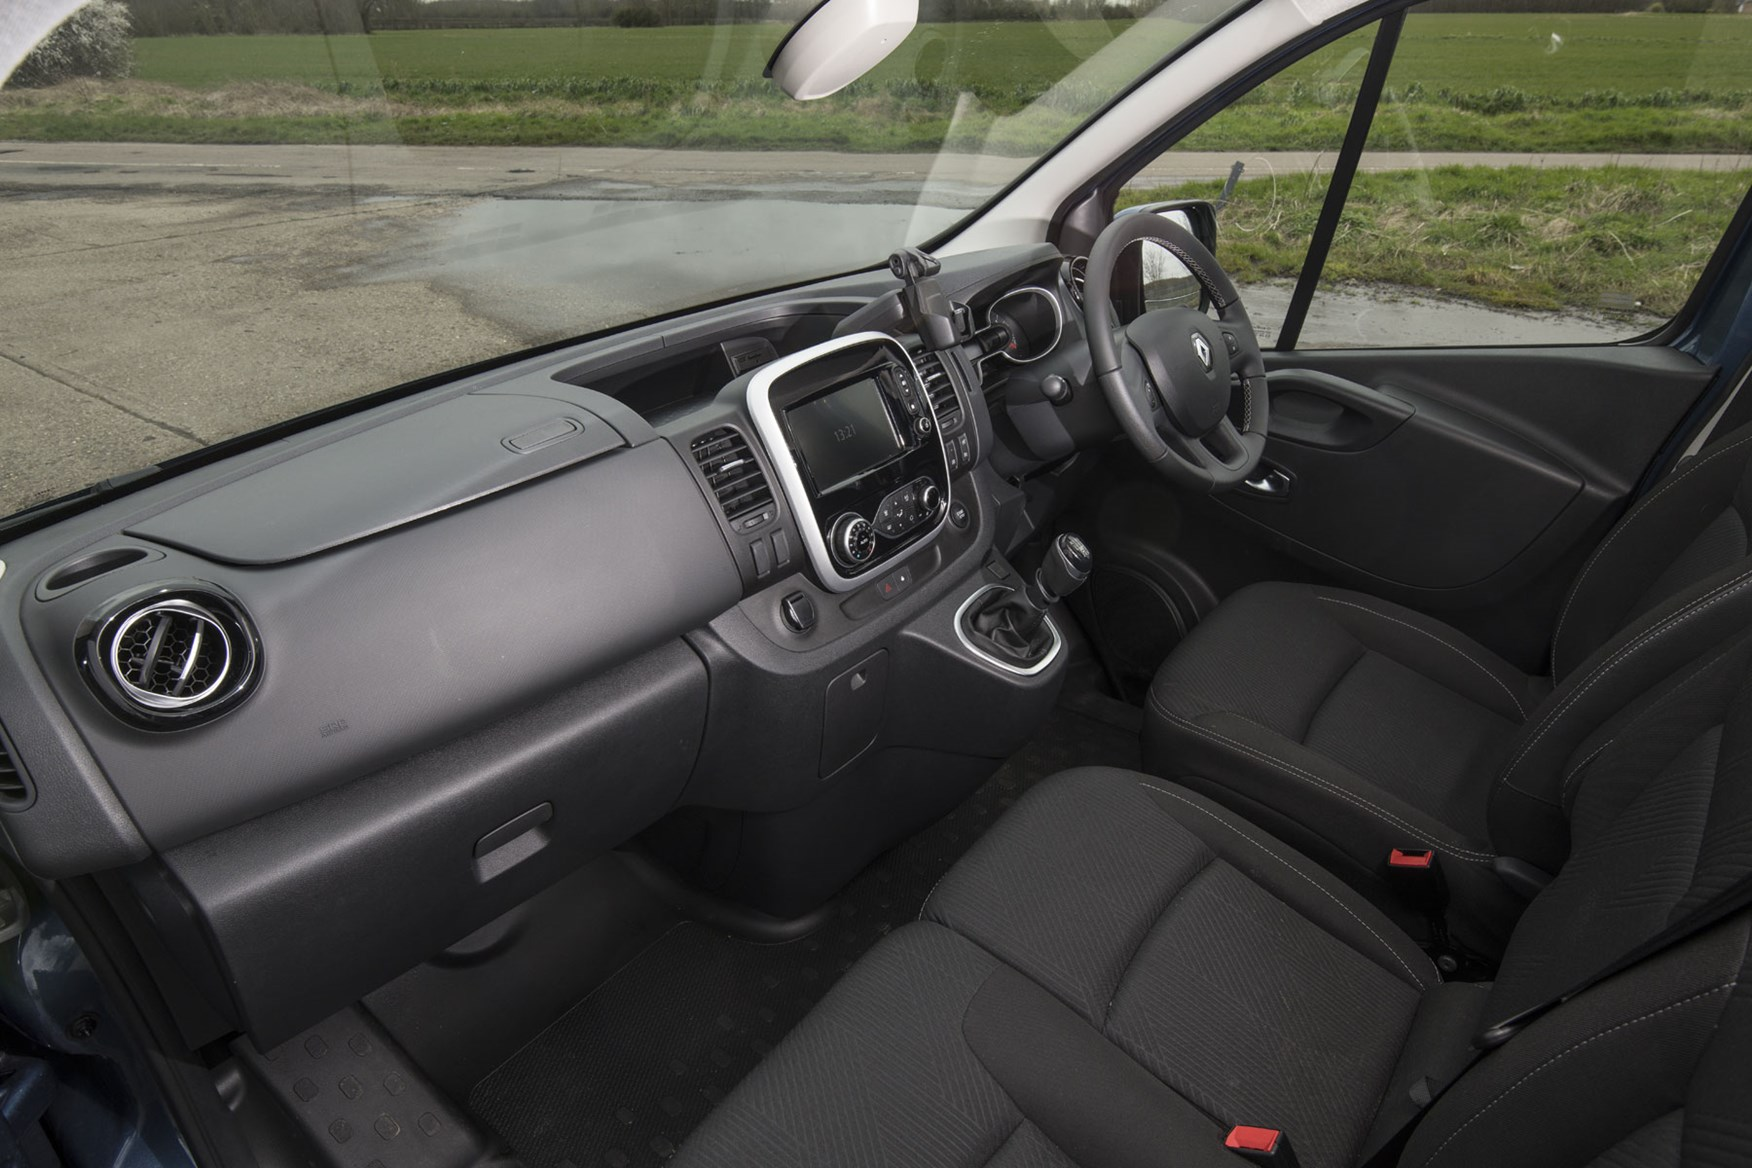 Renault trafic review - facelift, cab interior from passenger side, 2020